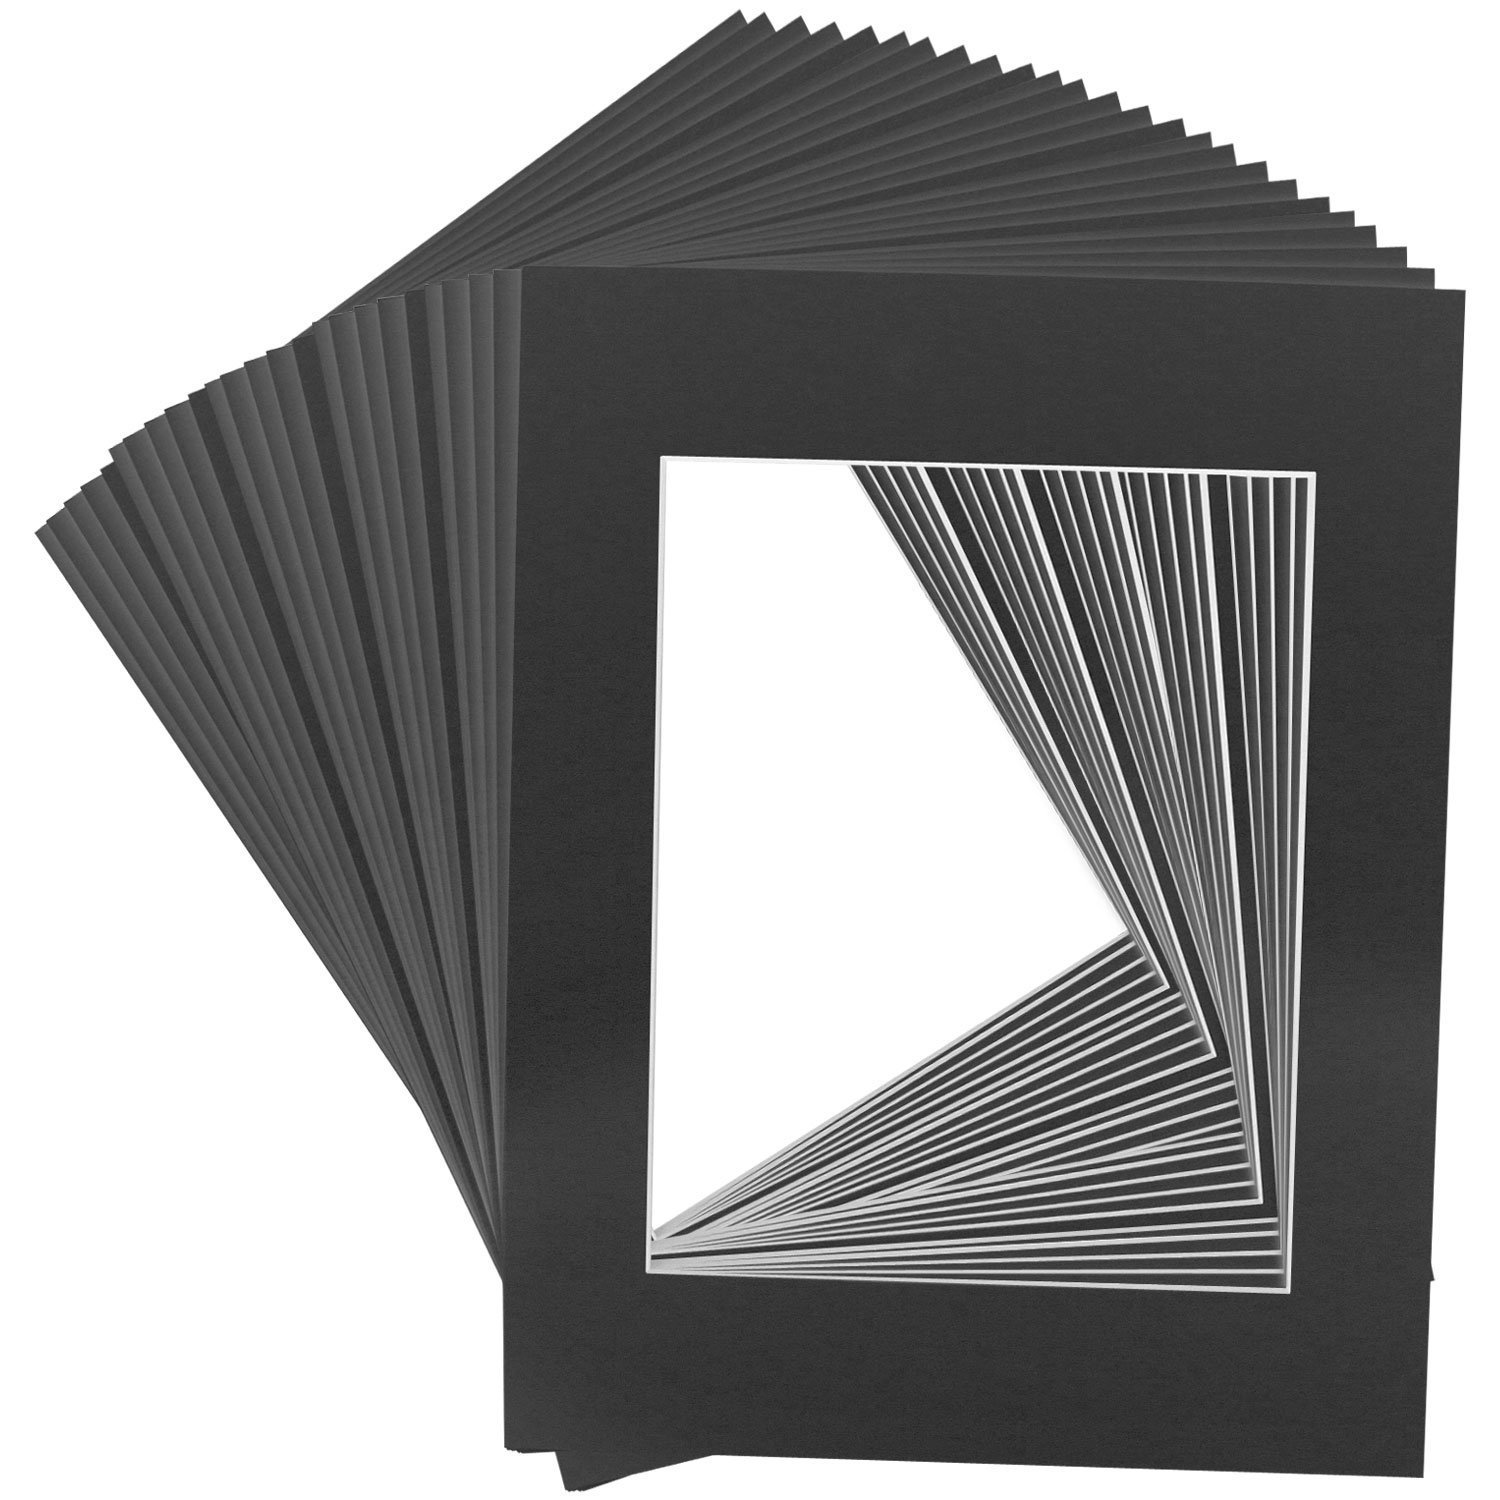 Golden State Art, Pack of 25, 16x20 Black Picture Mats Mattes with White Core Bevel Cut for 11x14 Photo NS142-1620-BLK25